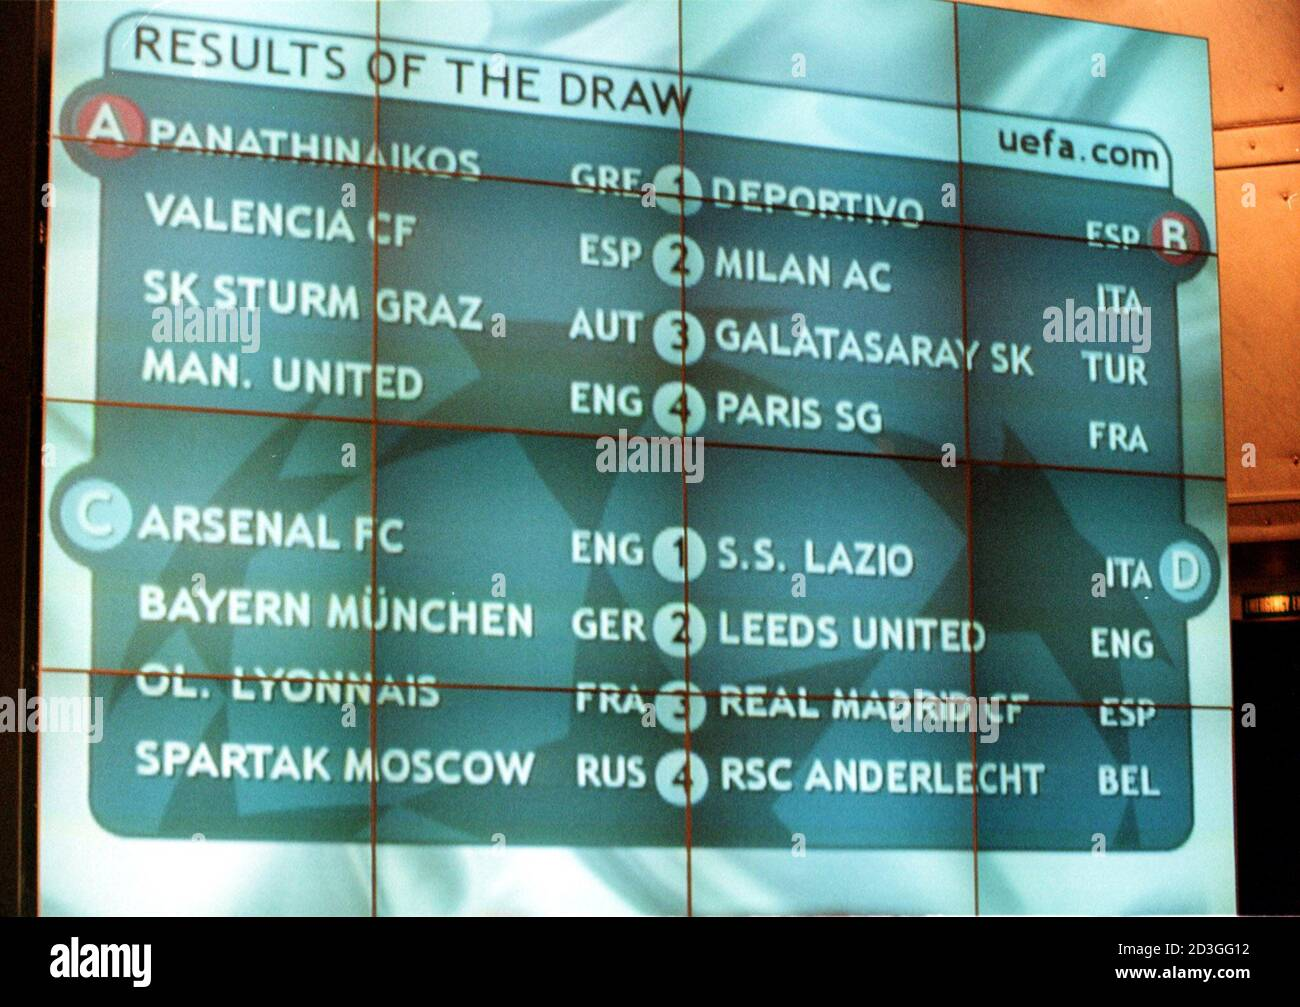 The Board Withthe Four Groups For The Second Round Of The Uefa Champions League 2000 01 As It Appears After The Drawing Procedure In Geneva On November 10 2000 The First Leg Matches